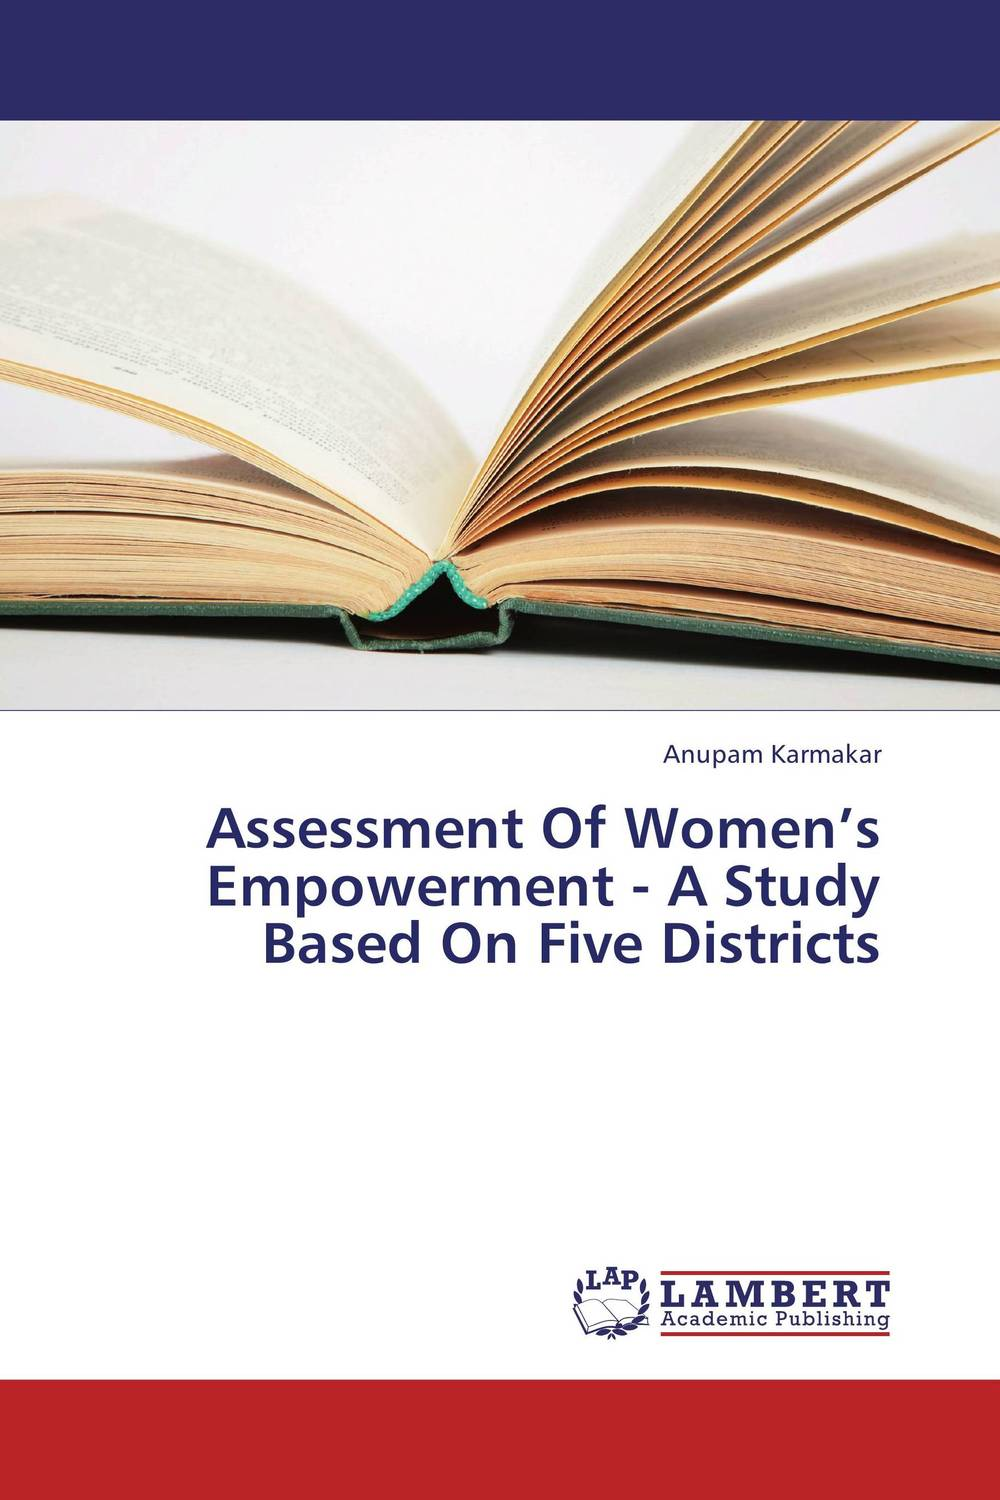 Assessment Of Women's Empowerment - A Study Based On Five Districts economic empowerment of women and family structures